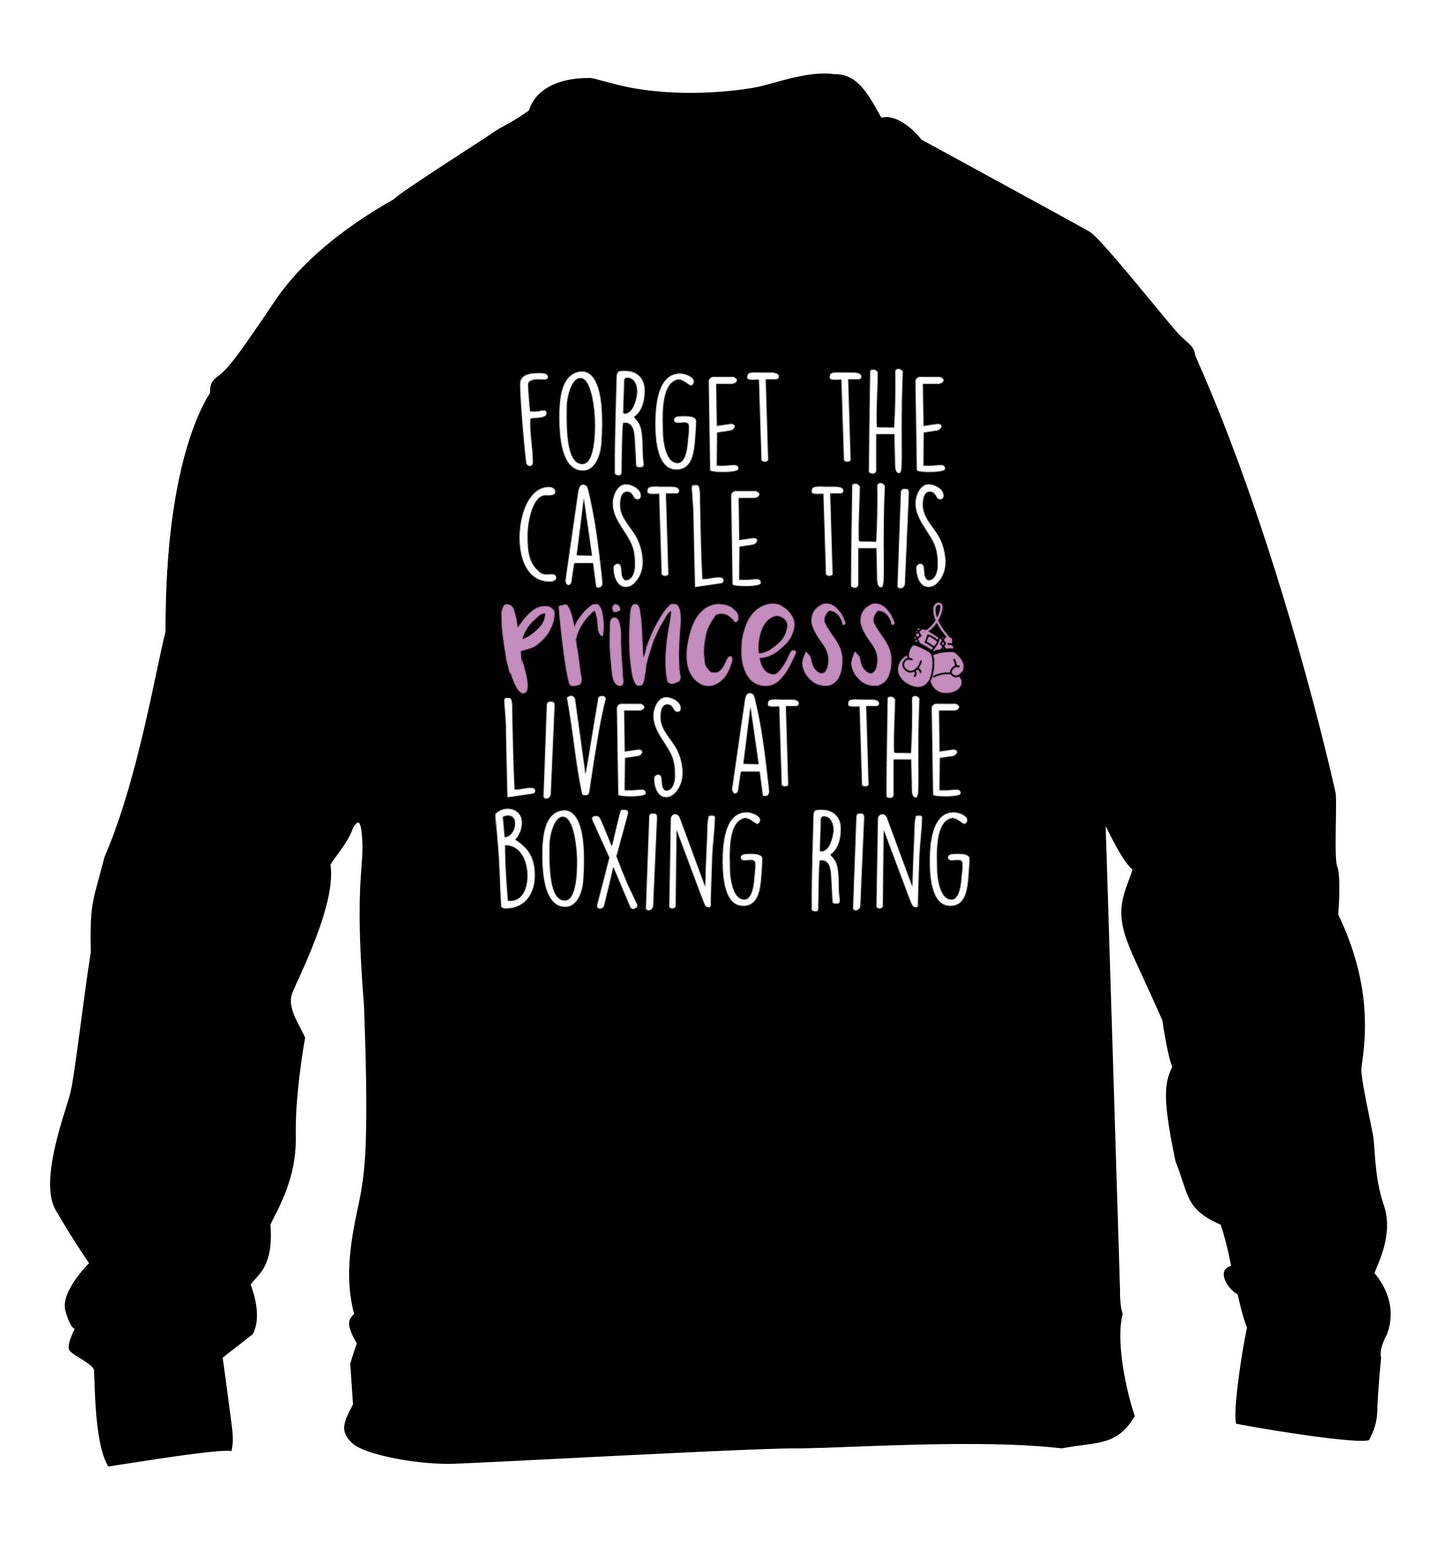 Forget the castle this princess lives at the boxing ring children's black sweater 12-14 Years